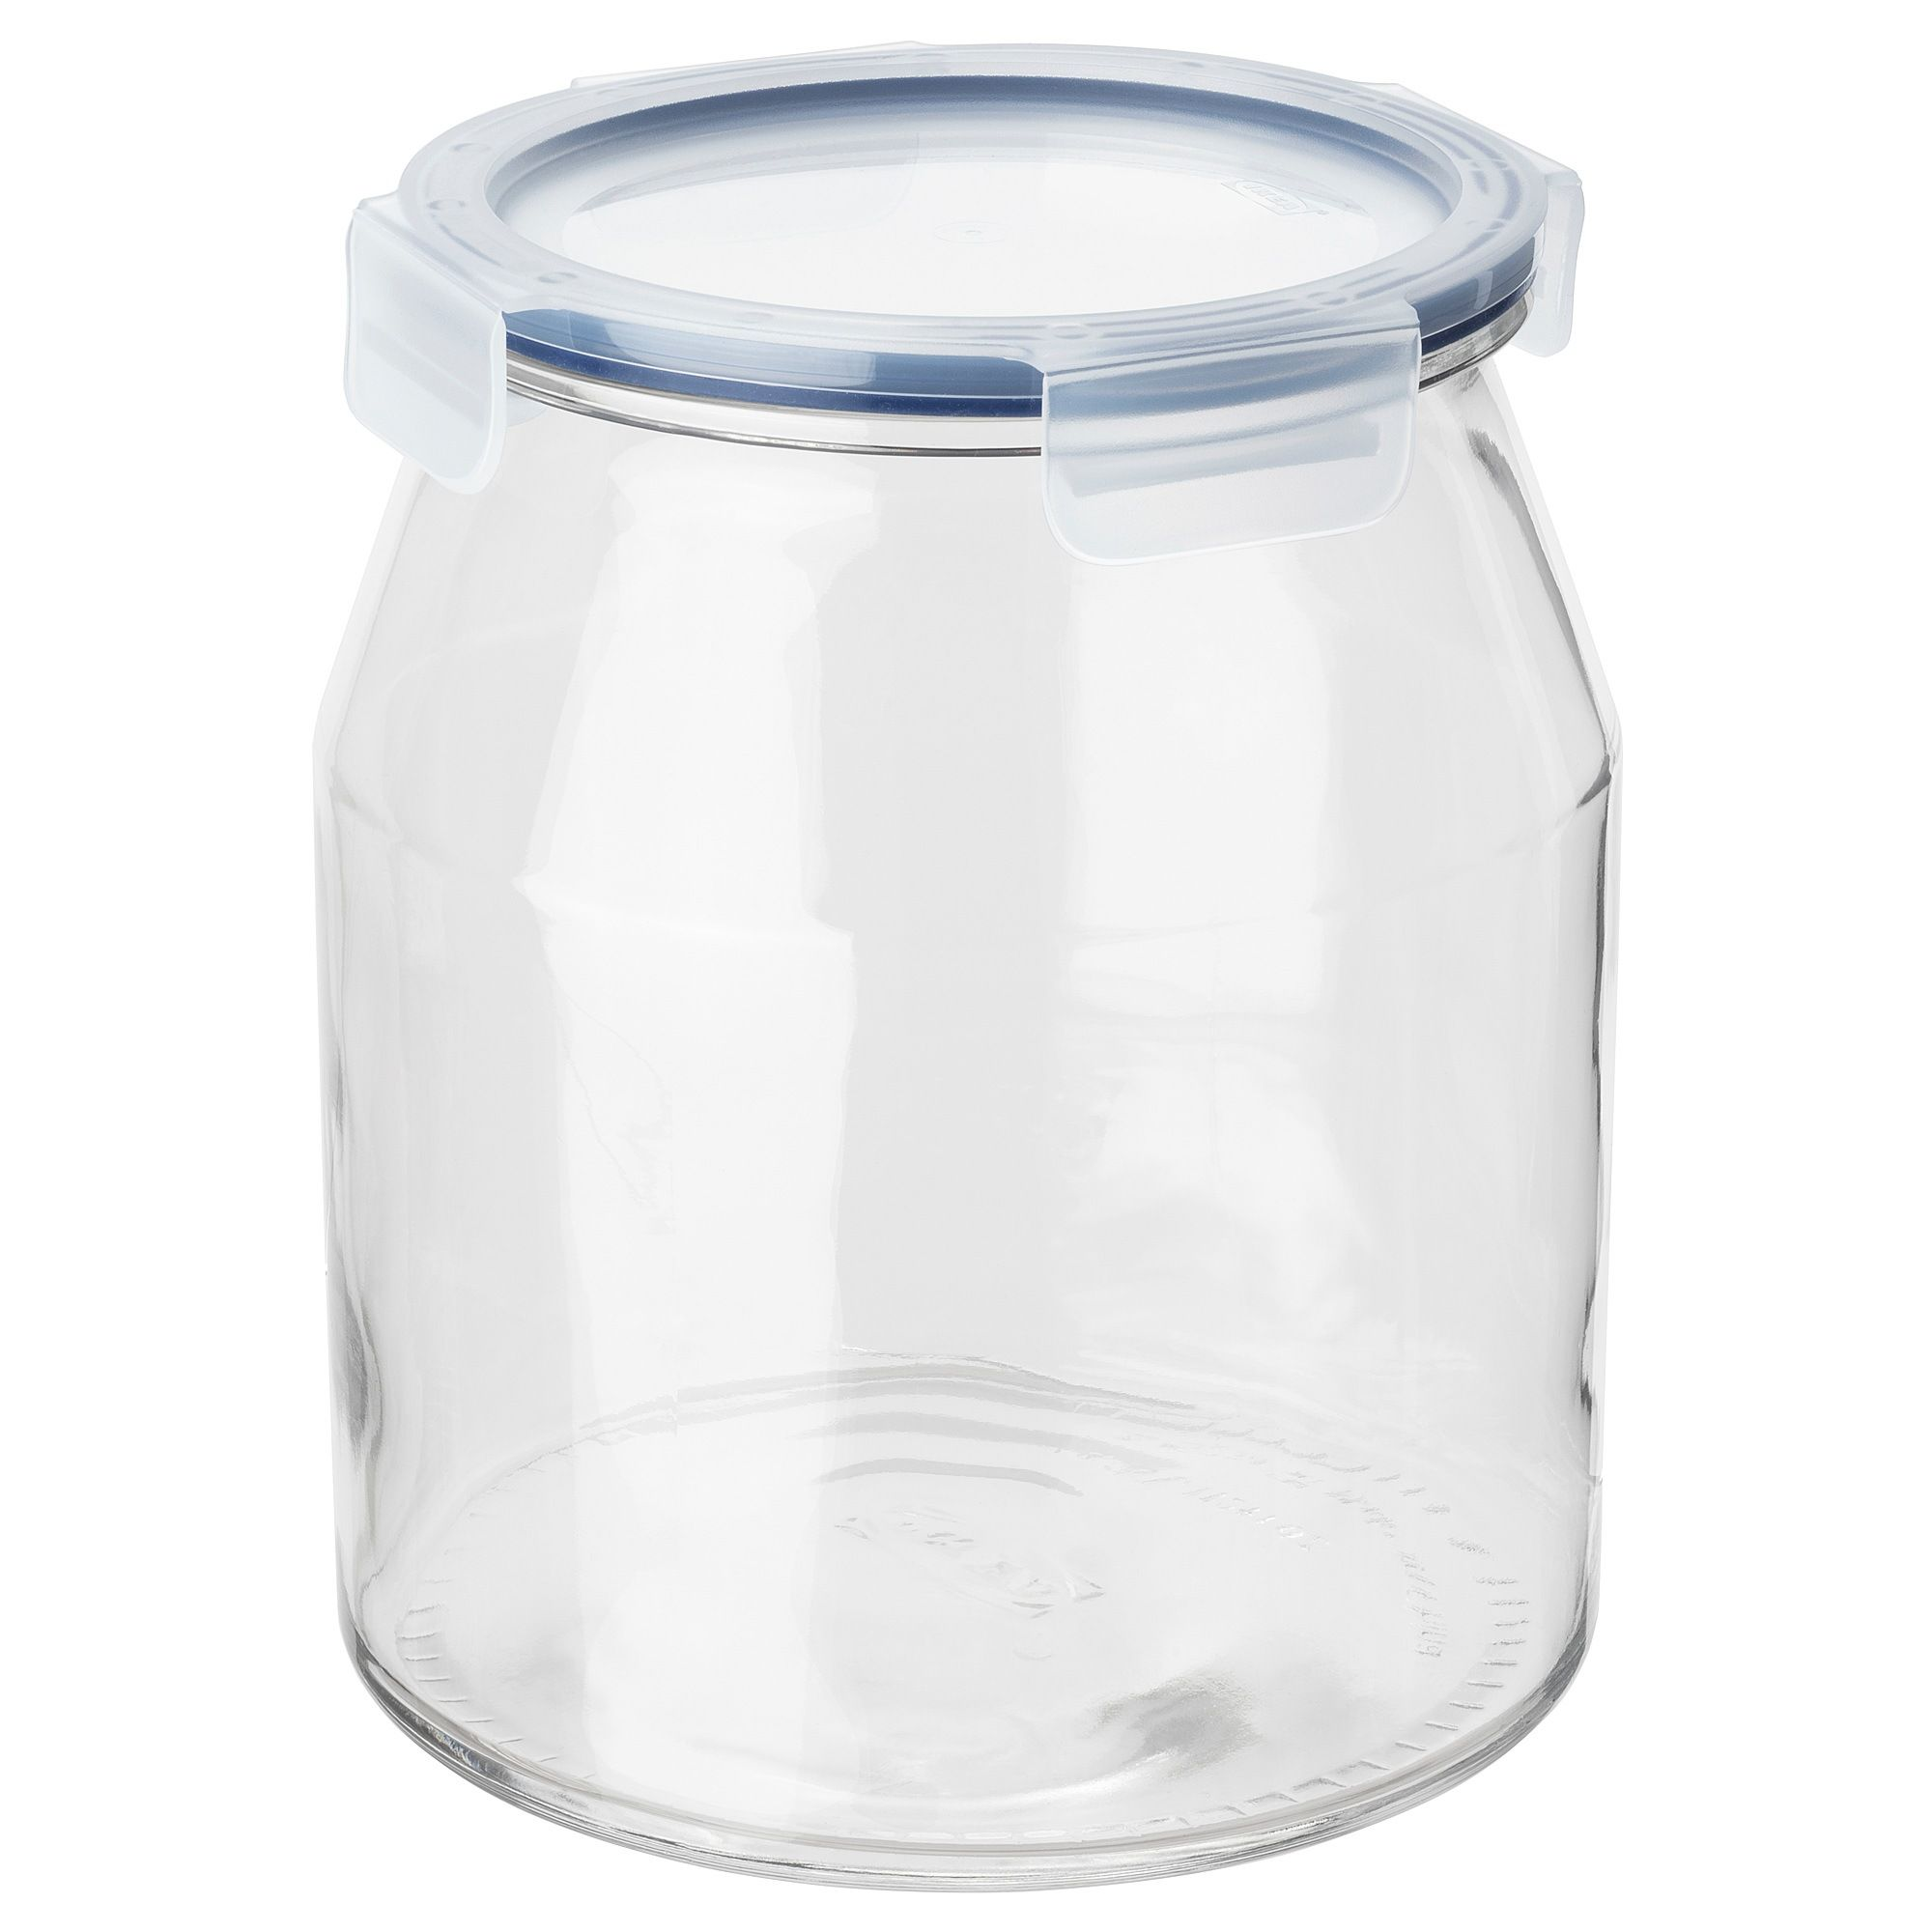 365 Jar With Lid Glass Plastic 112 Oz Ikea 365 Food Storage Organization Plastic Jars With Lids